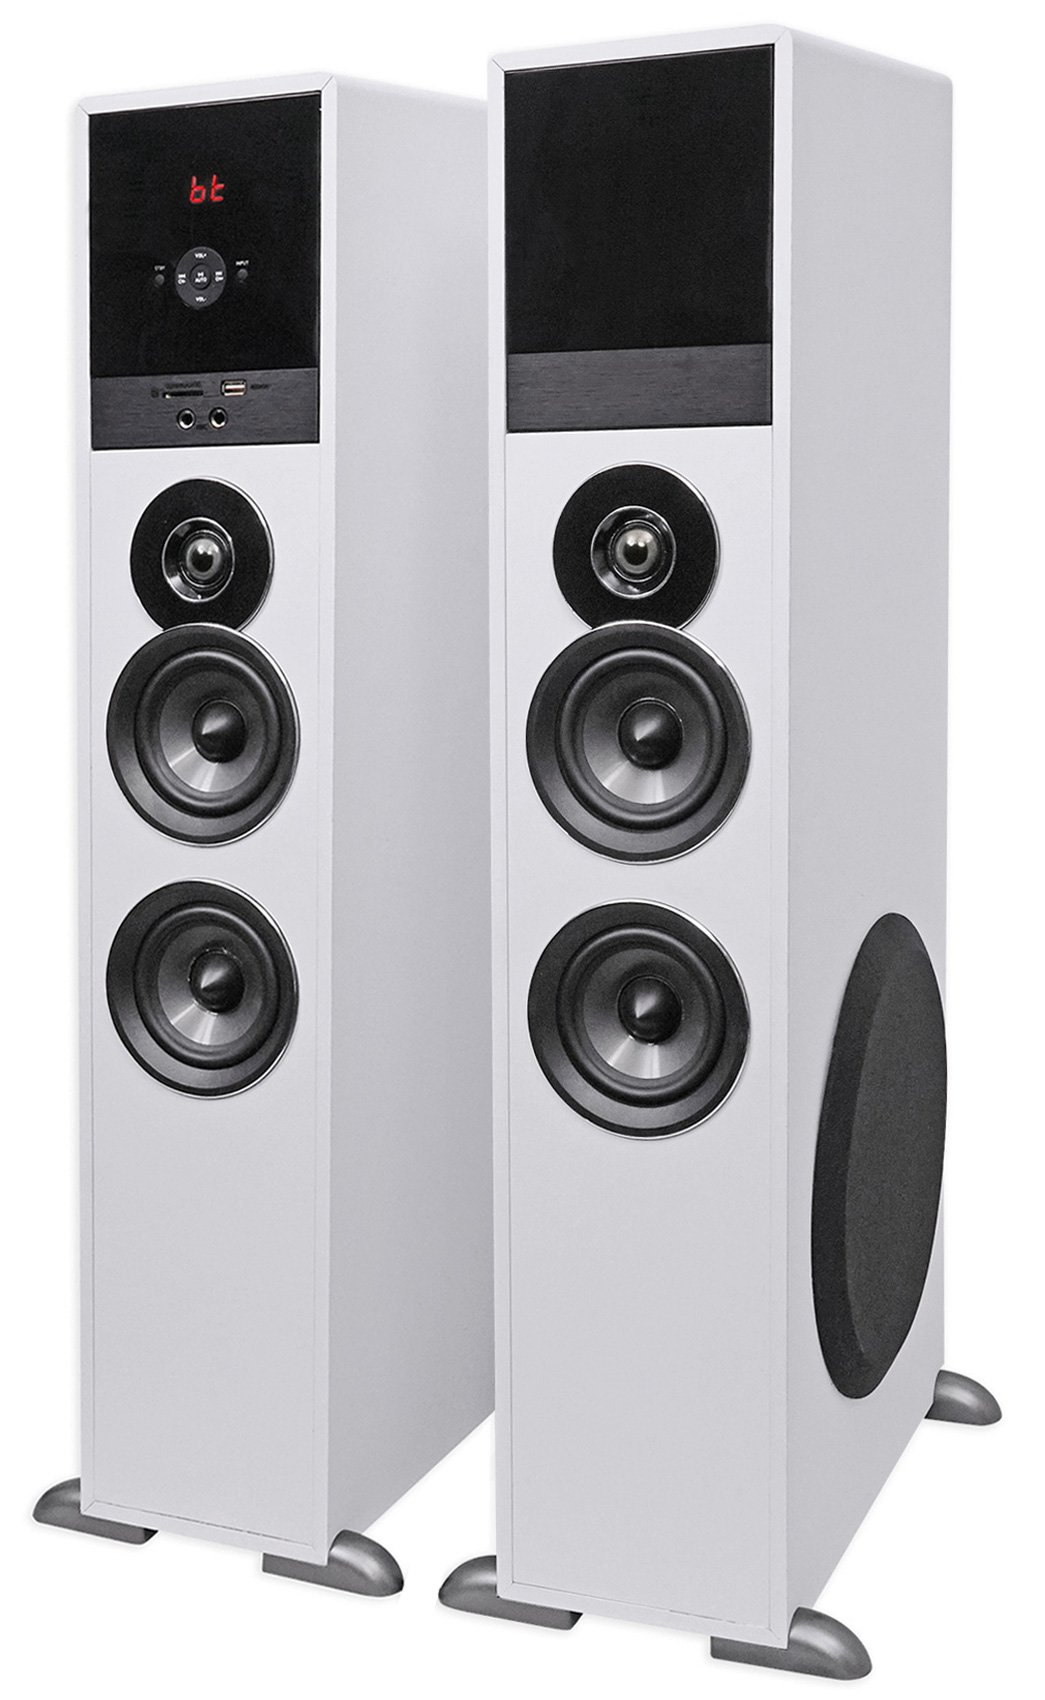 Tower Speaker Home Theater System+8'' Sub For Insignia 50'' Television TV-White by Rockville (Image #2)